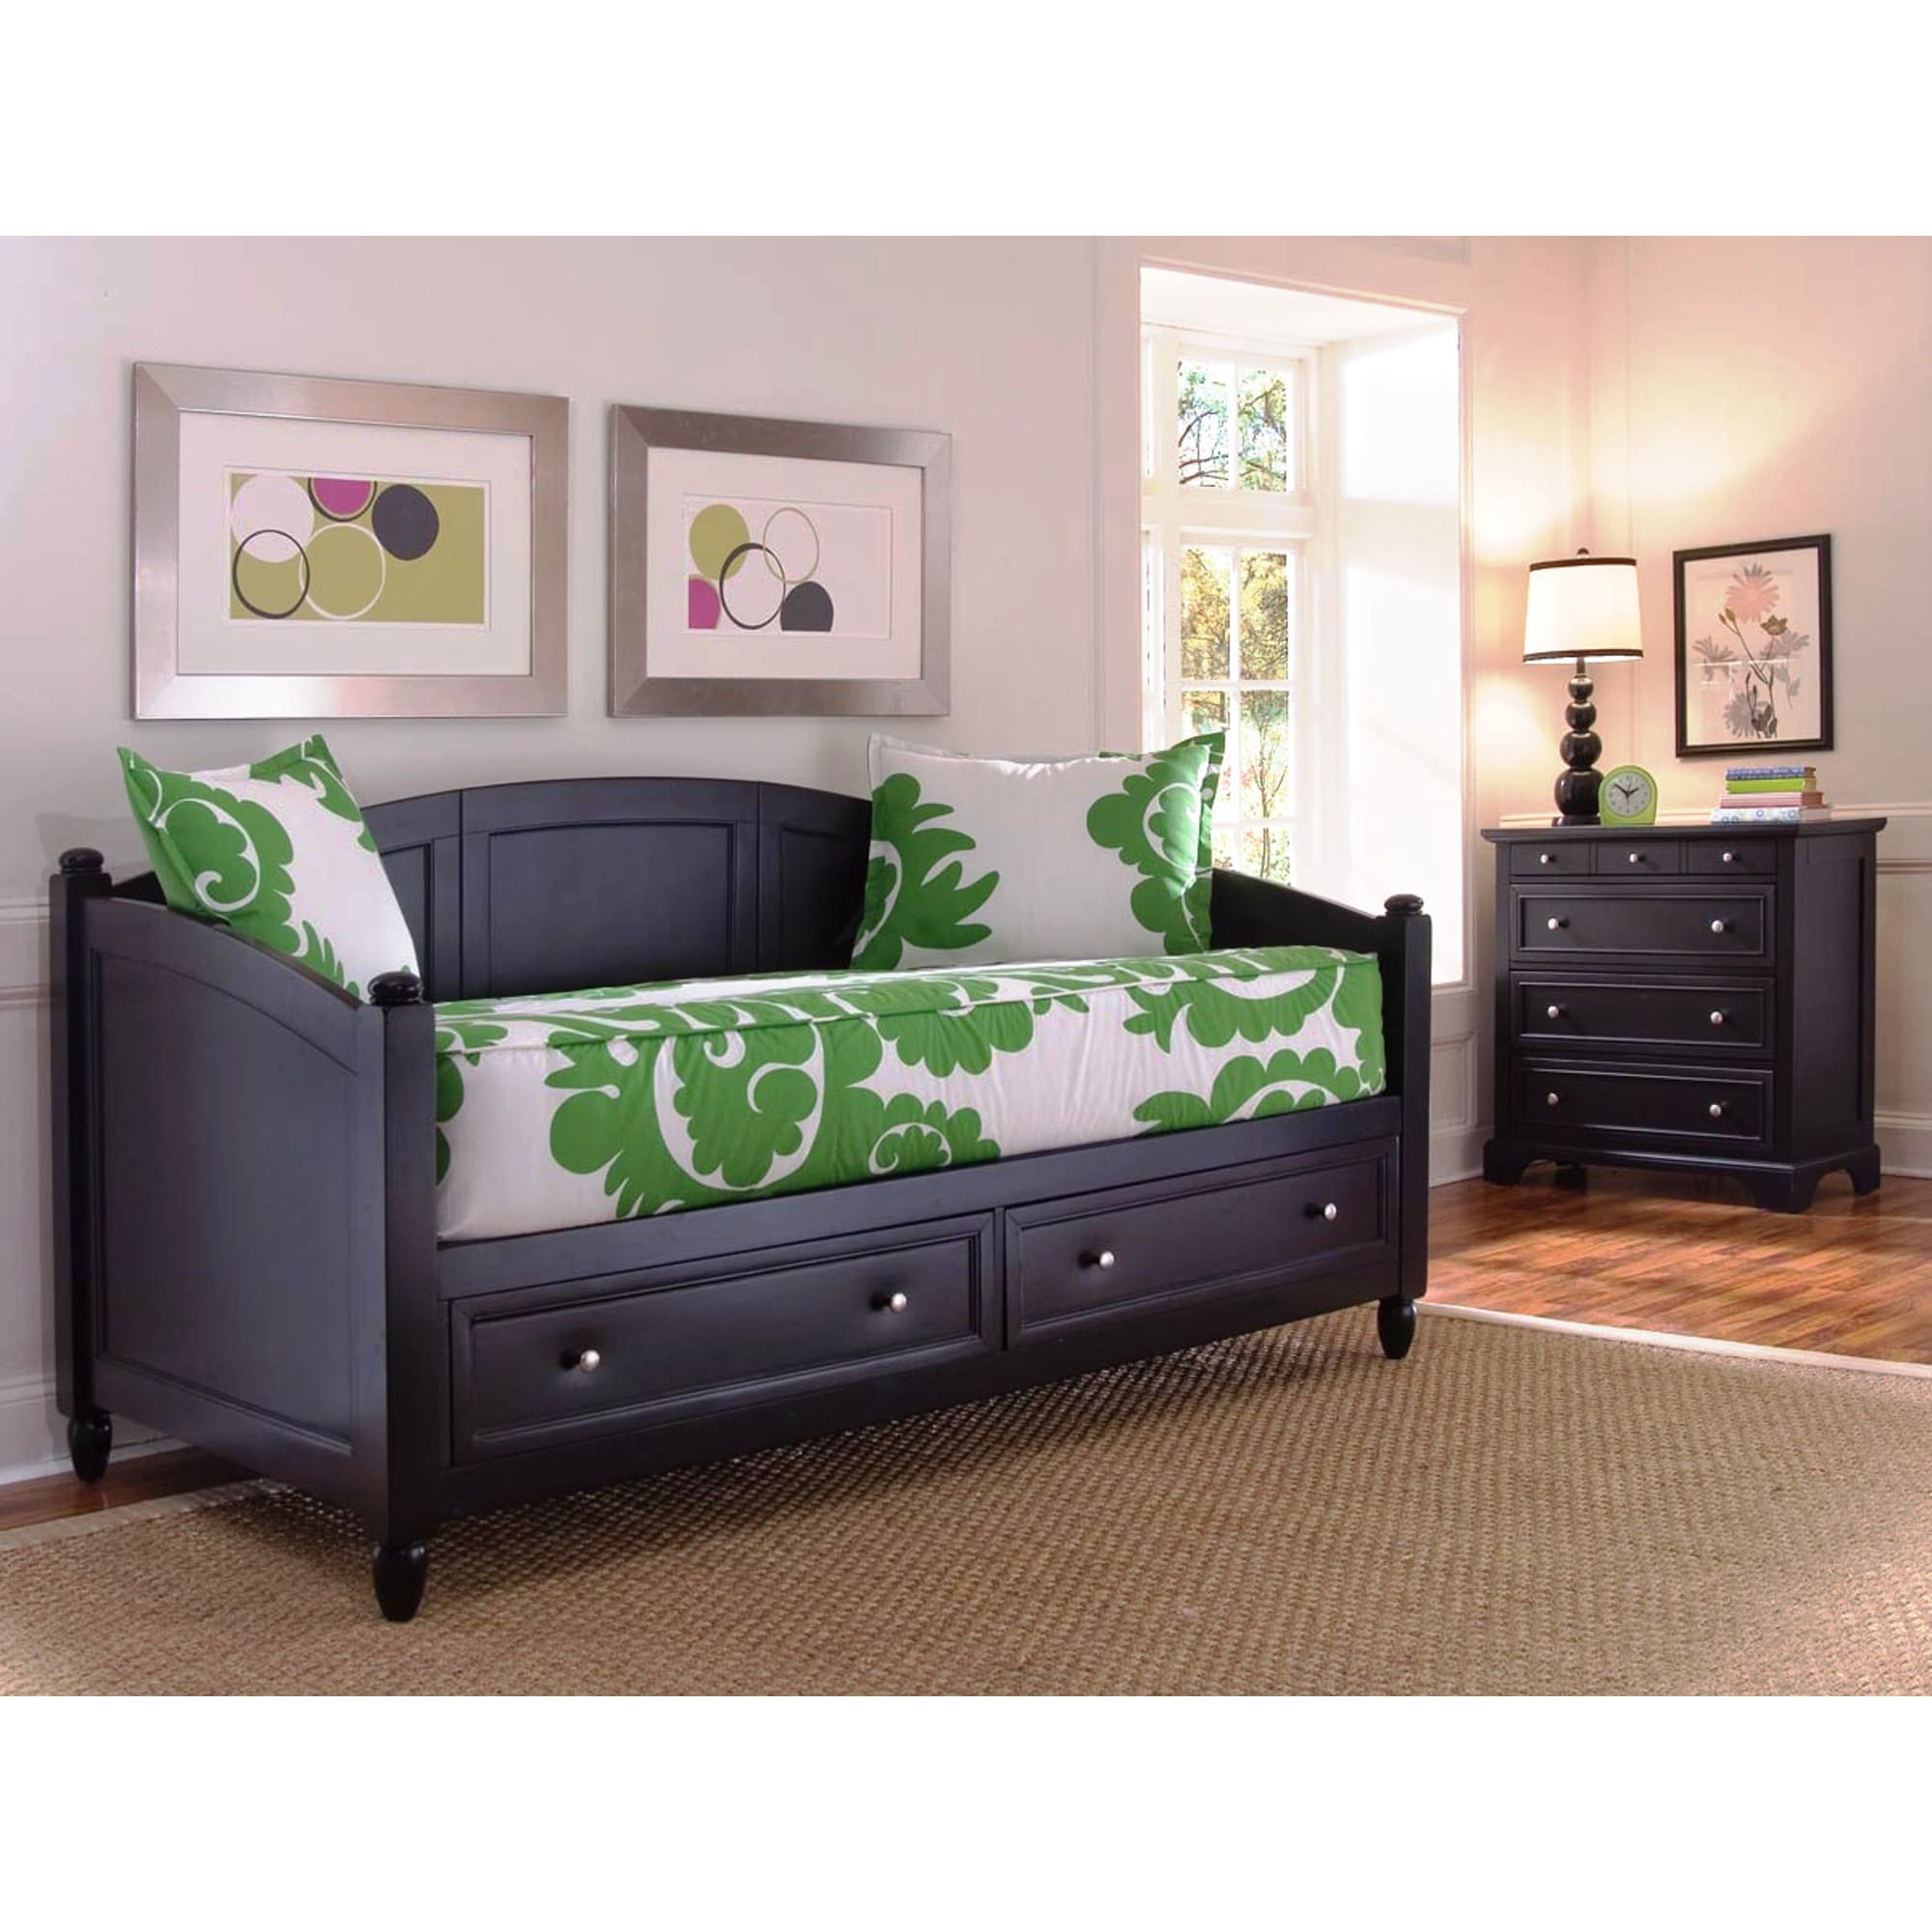 twin size black daybed and chest set bedroom furniture day bed durable